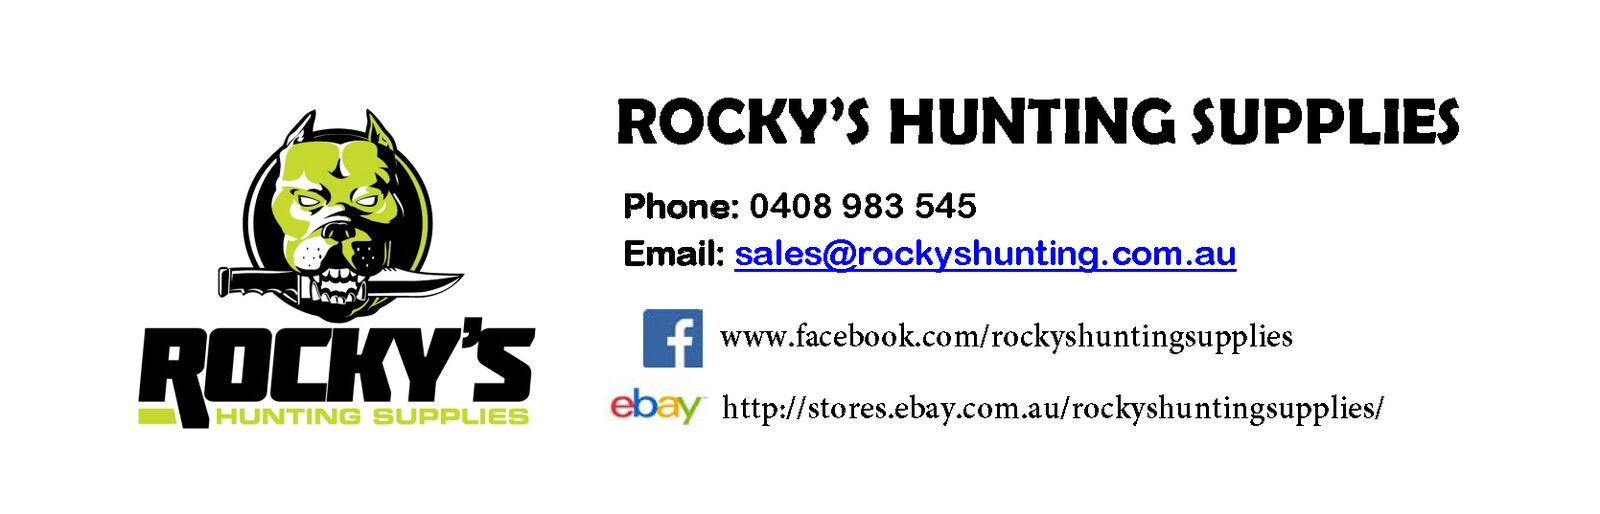 Rockys Hunting Supplies